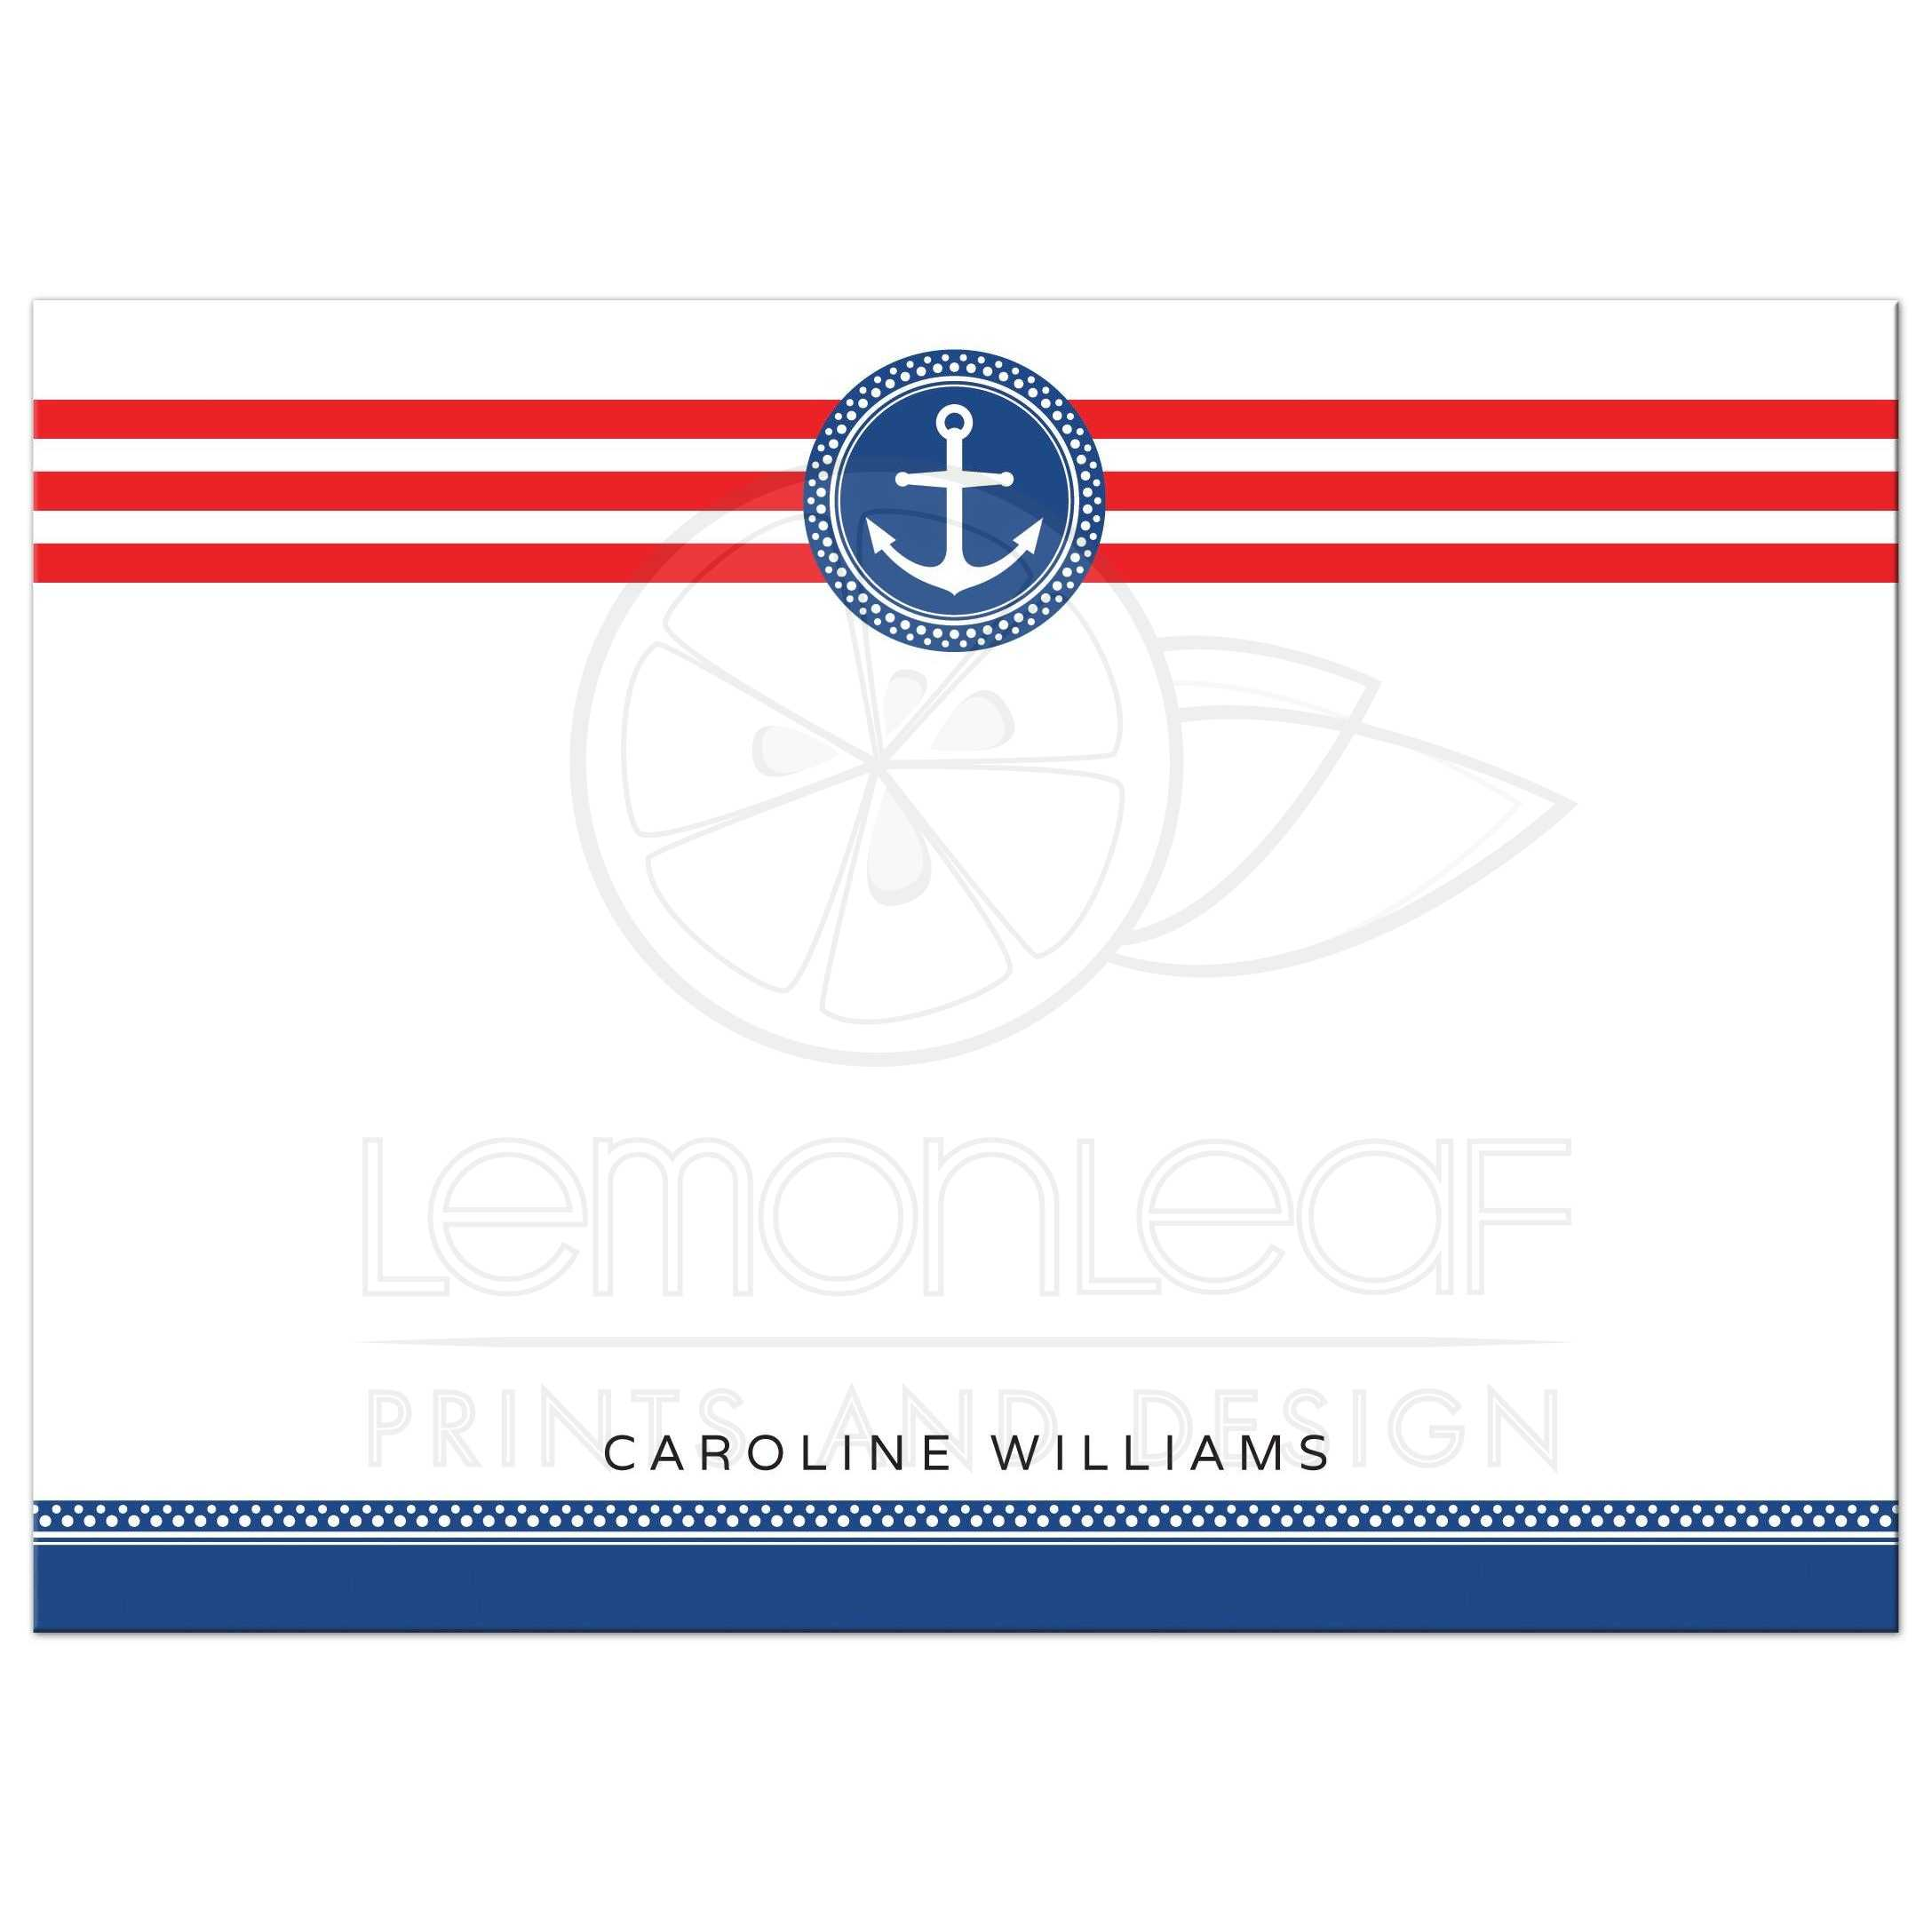 flat personalized note card with navy blue anchor emblem and red stripes - Personalized Flat Note Cards